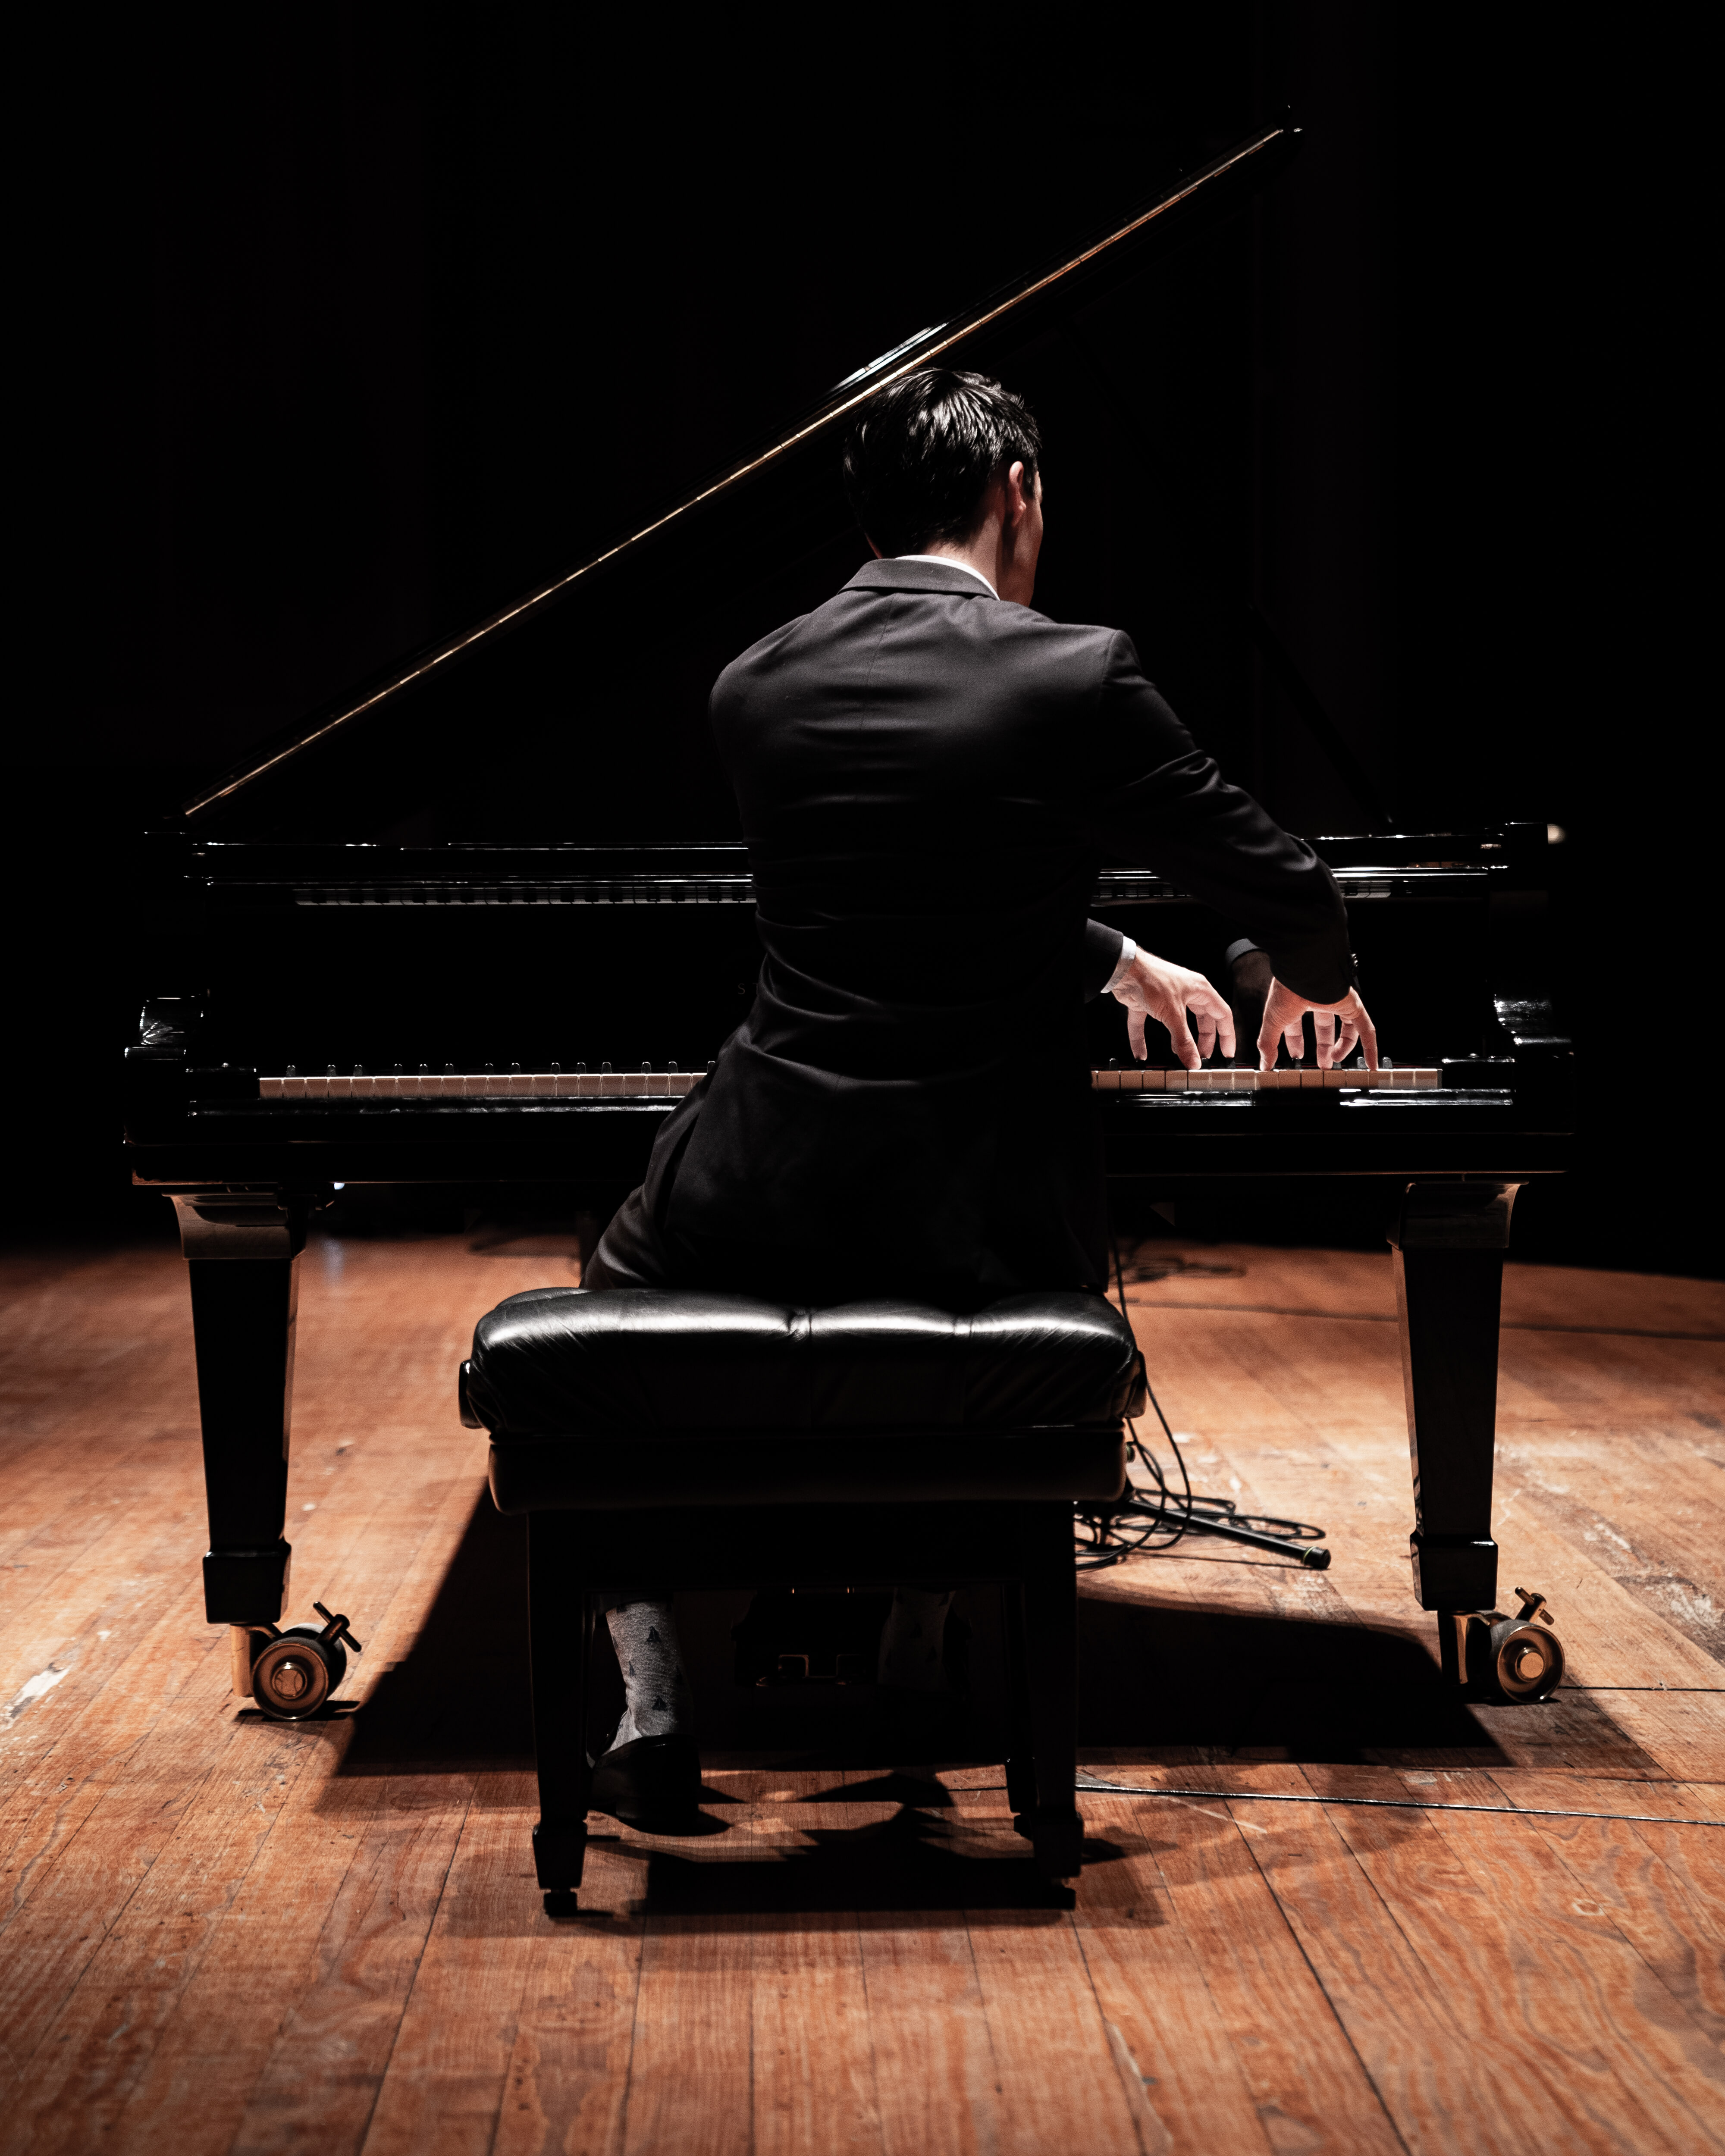 Pianist and grand piano and piano chair on a wooden floor with microphone cables.